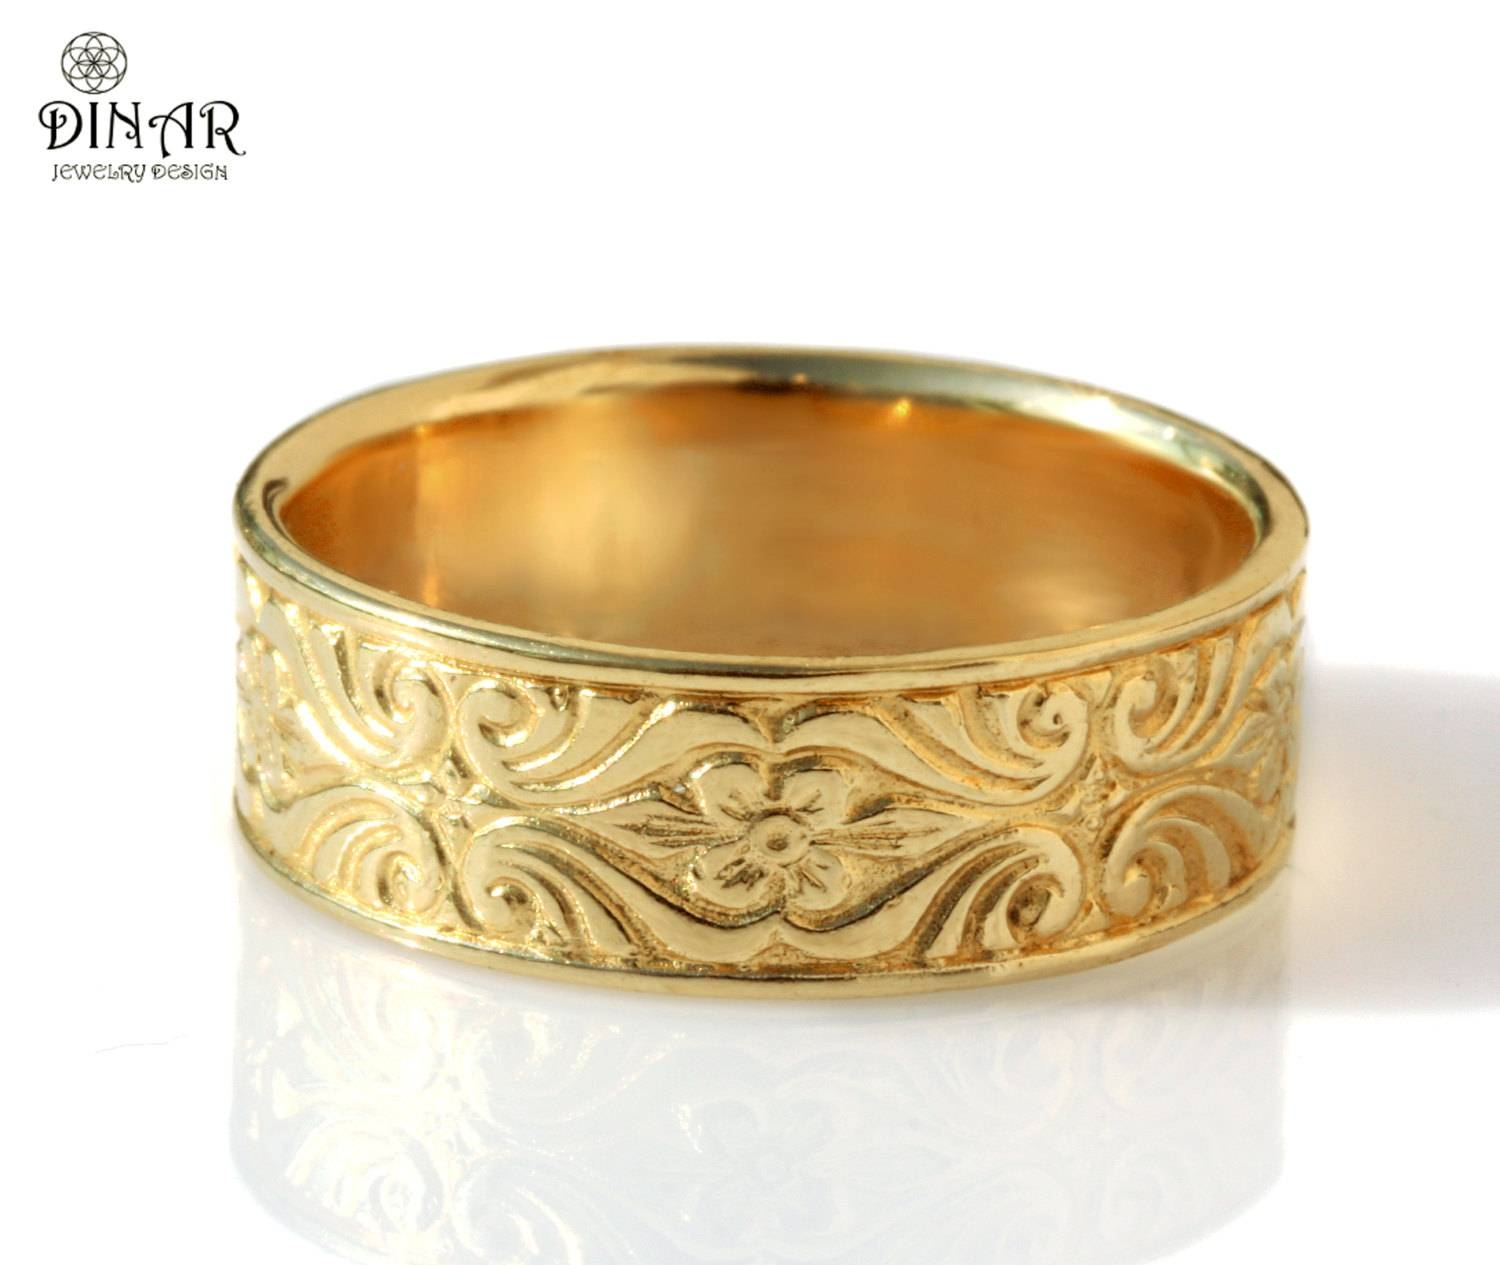 18K Gold Vintage Design Wedding Band Engraved Floral Intended For Engraved Gold Wedding Bands (Gallery 10 of 15)